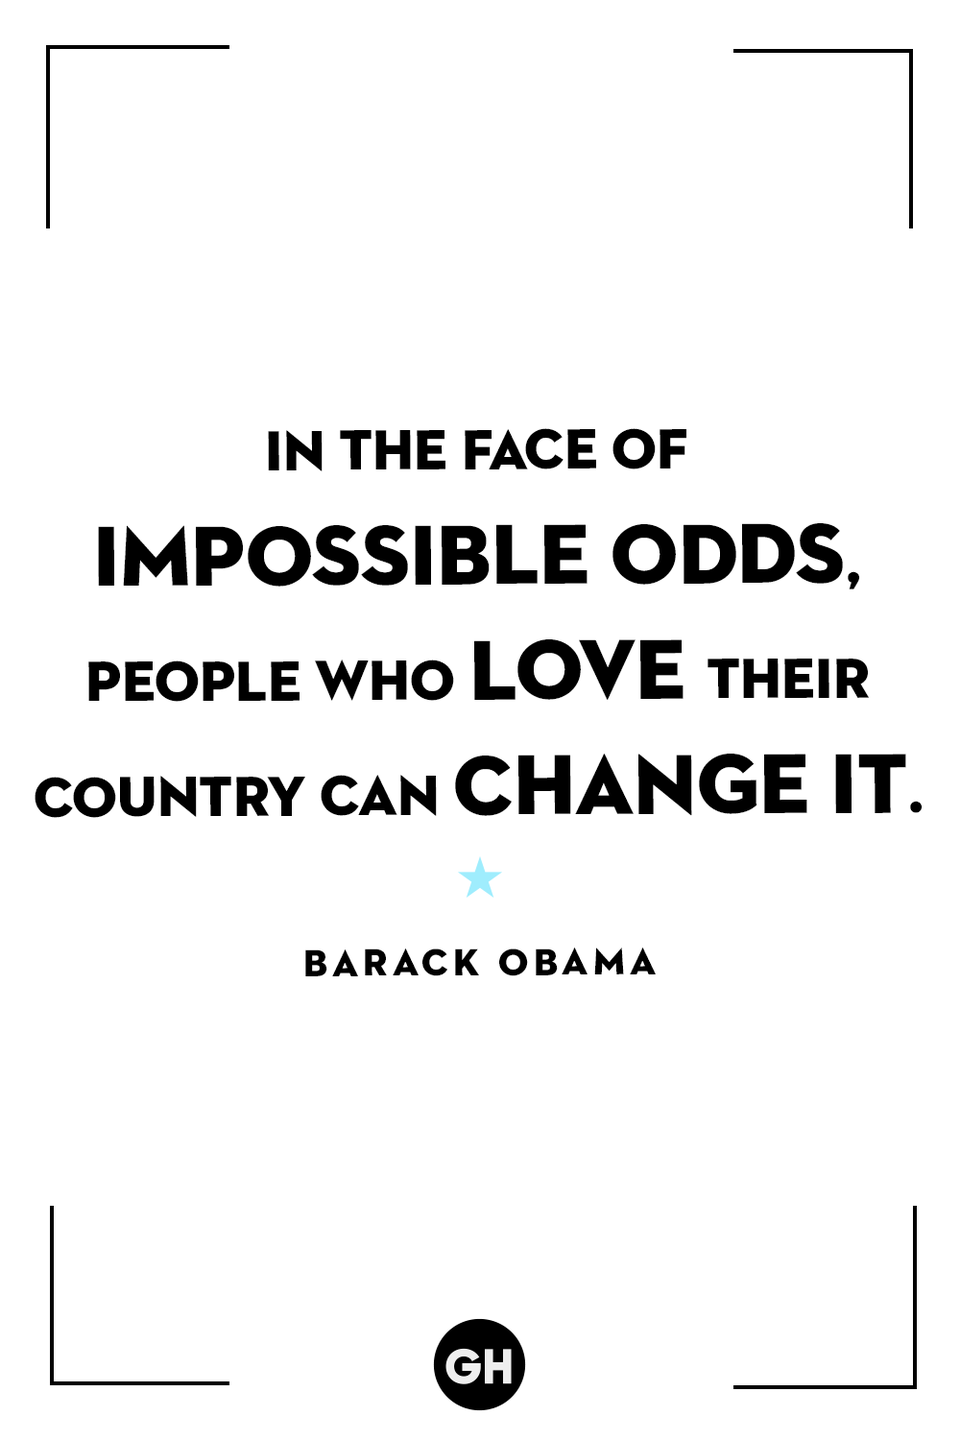 <p>In the face of impossible odds, people who love their country can change it.</p>